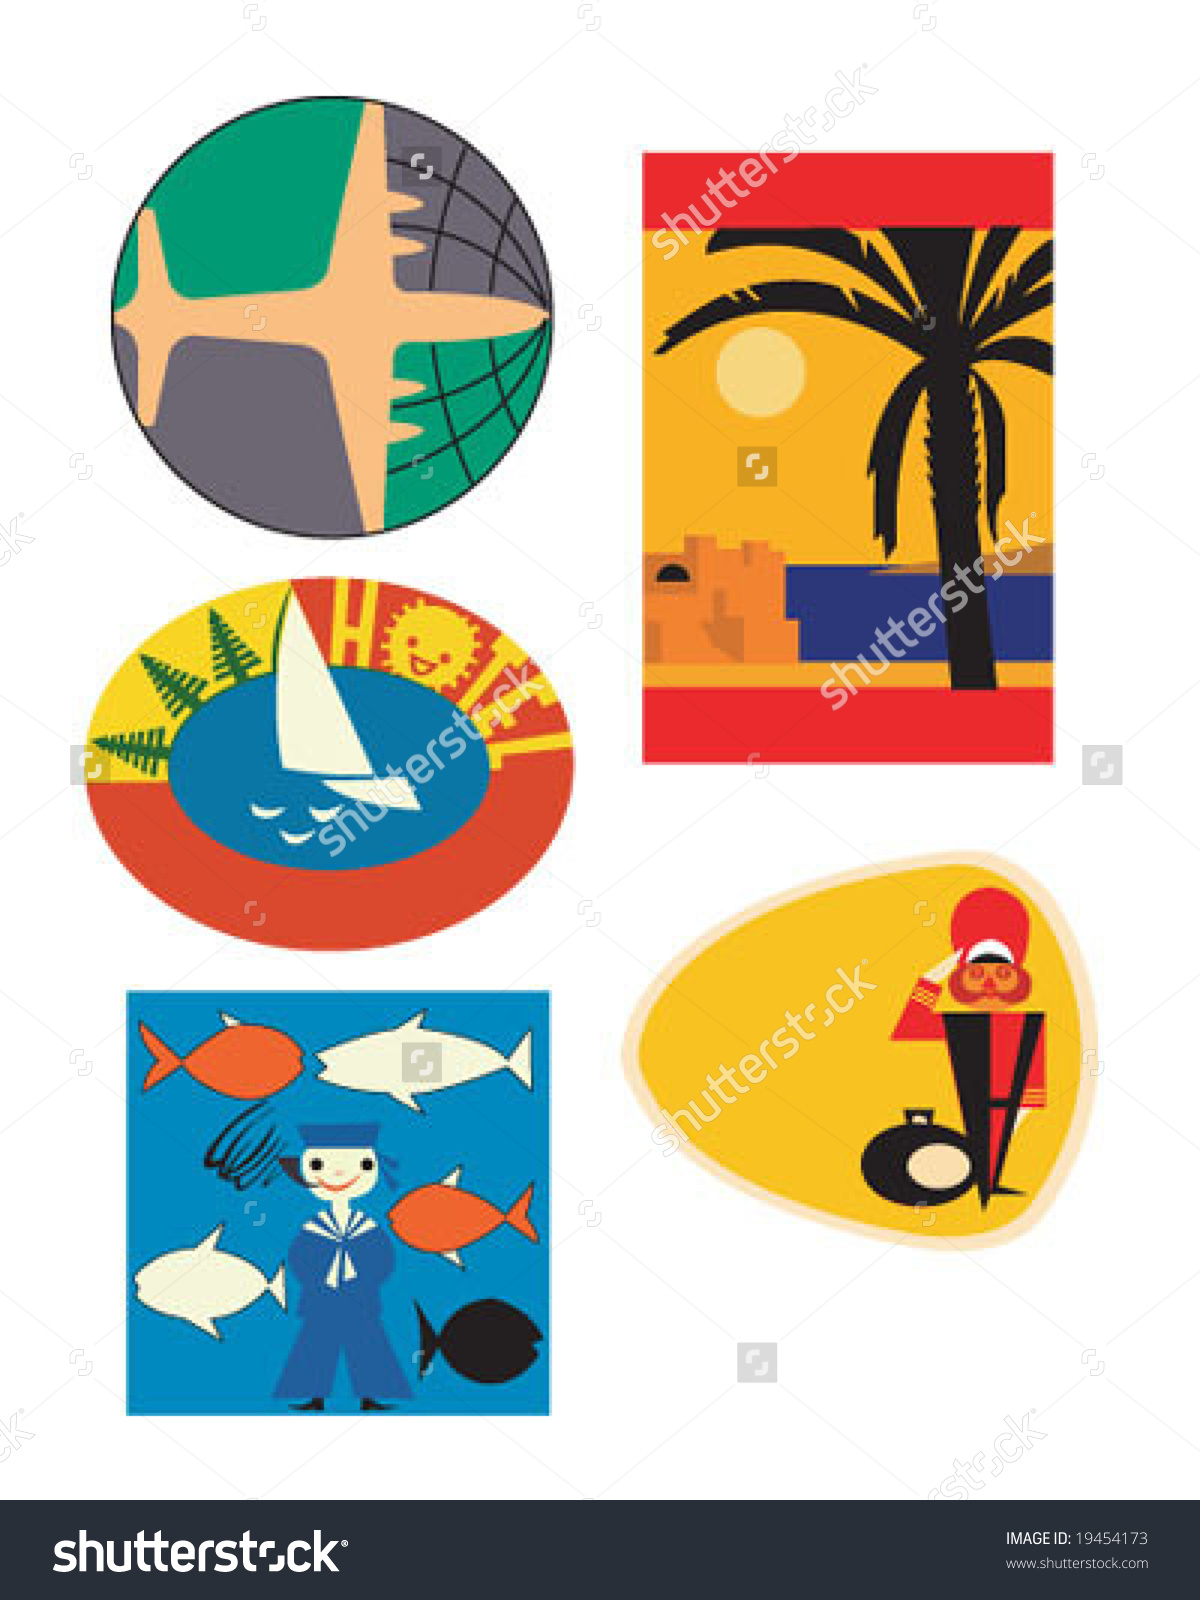 Vintage stickers clipart freeuse download Vintage Travel Stickers Clipart (88 ) - Free Clipart freeuse download